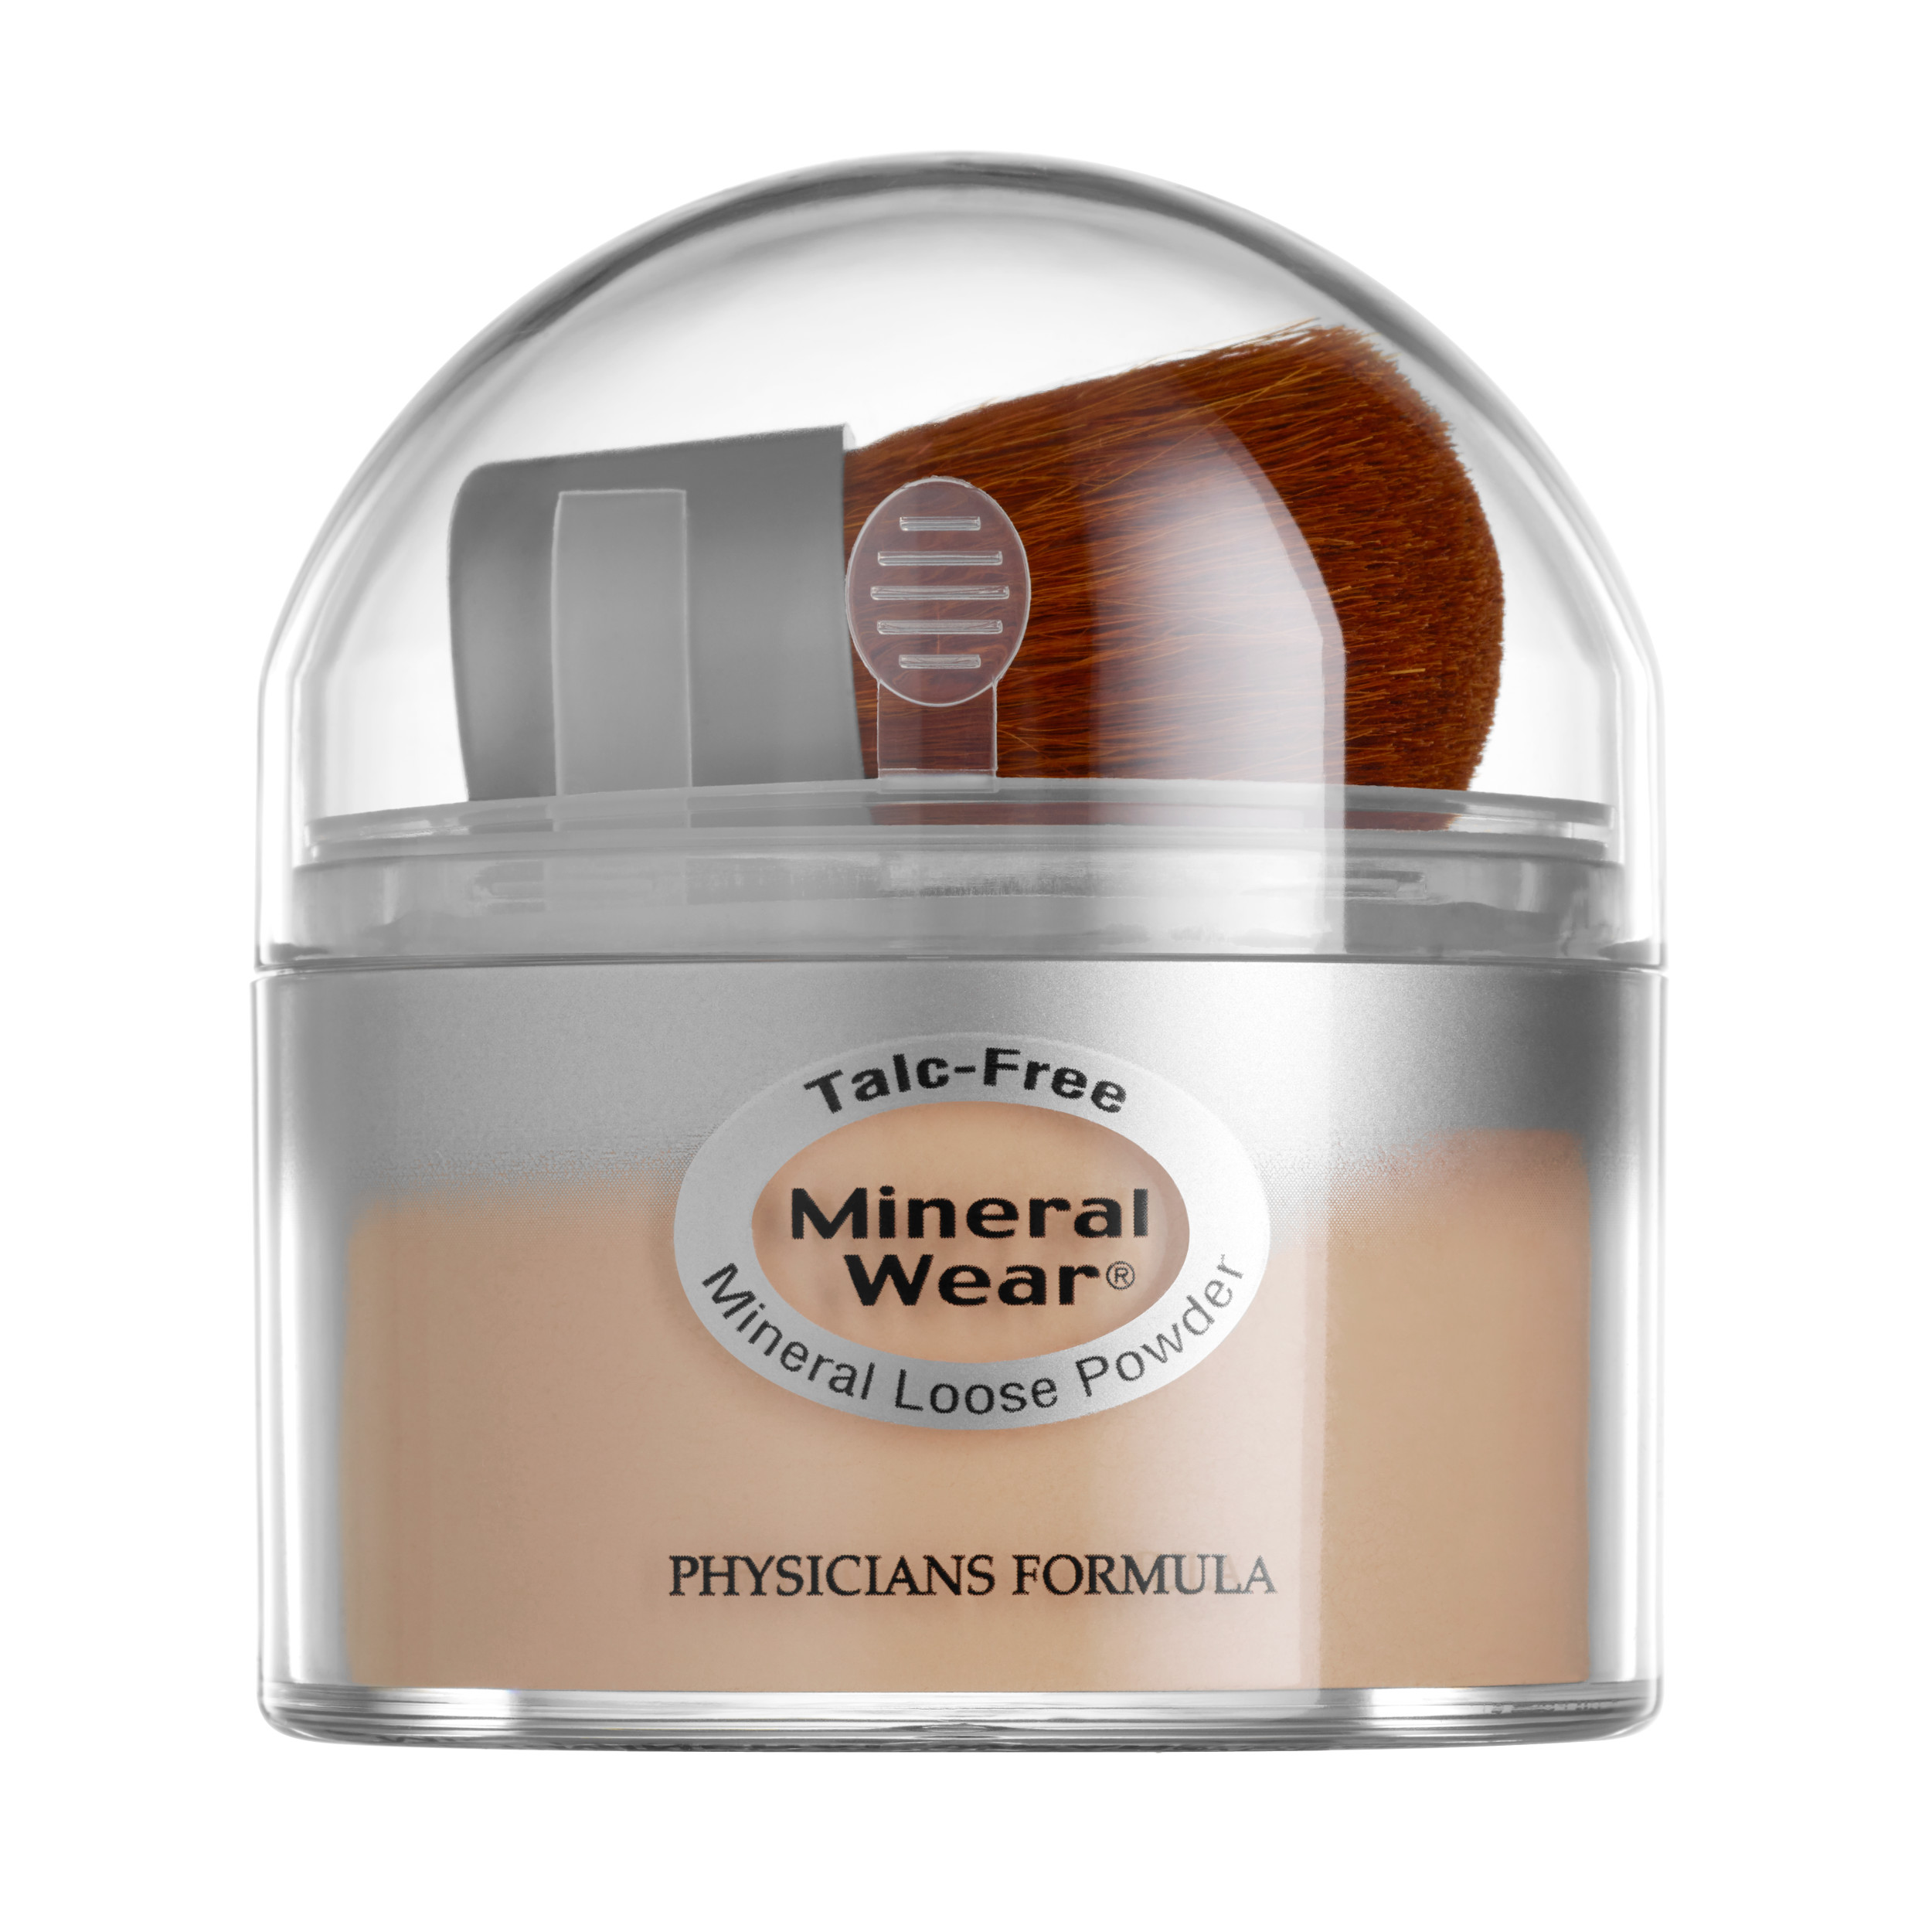 Physicians Formula Mineral Wear® Talc Free Loose Powder, Natural Beige